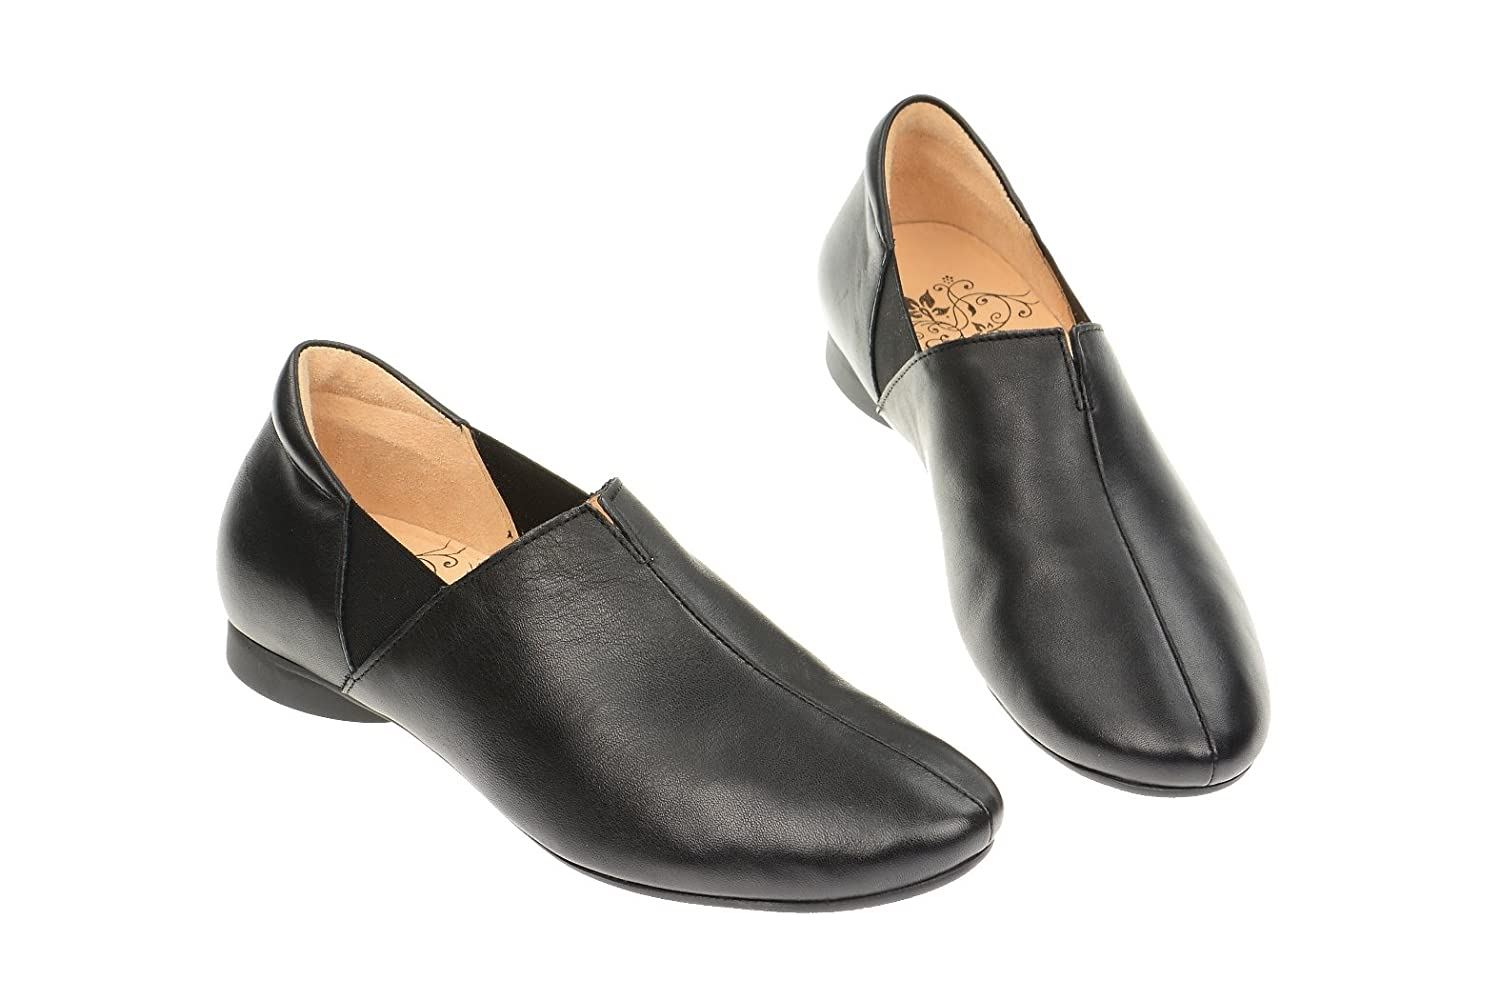 83794 Damen Guad Coupe Slipper 00 Schwarz Fermées Think 3 X5qdwX